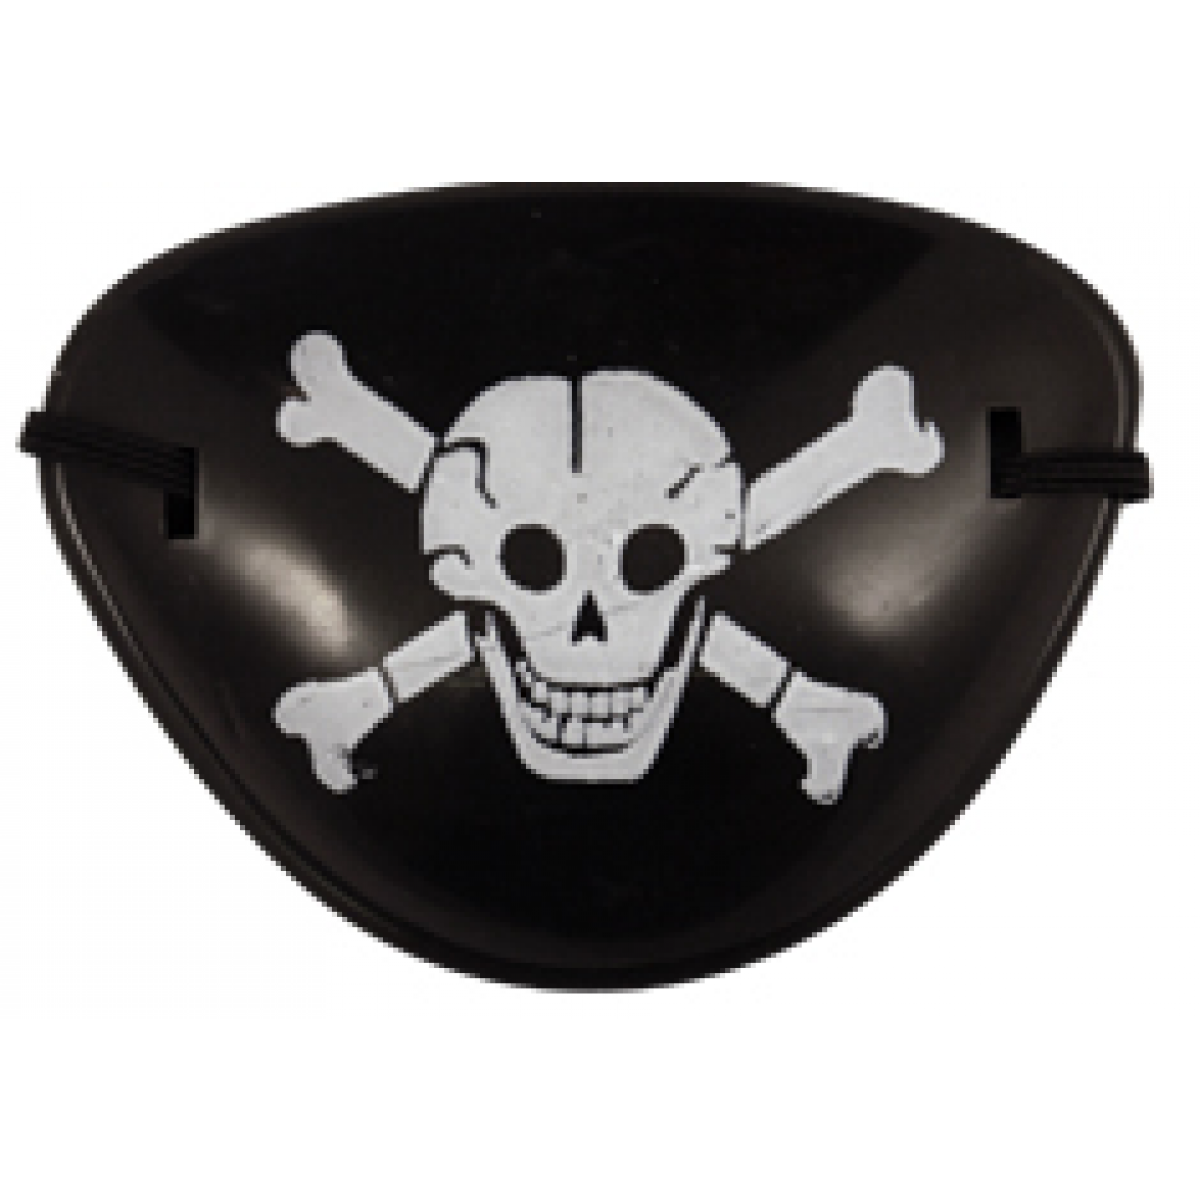 Pirate eye patch more. Eyepatch png transparent graphic download